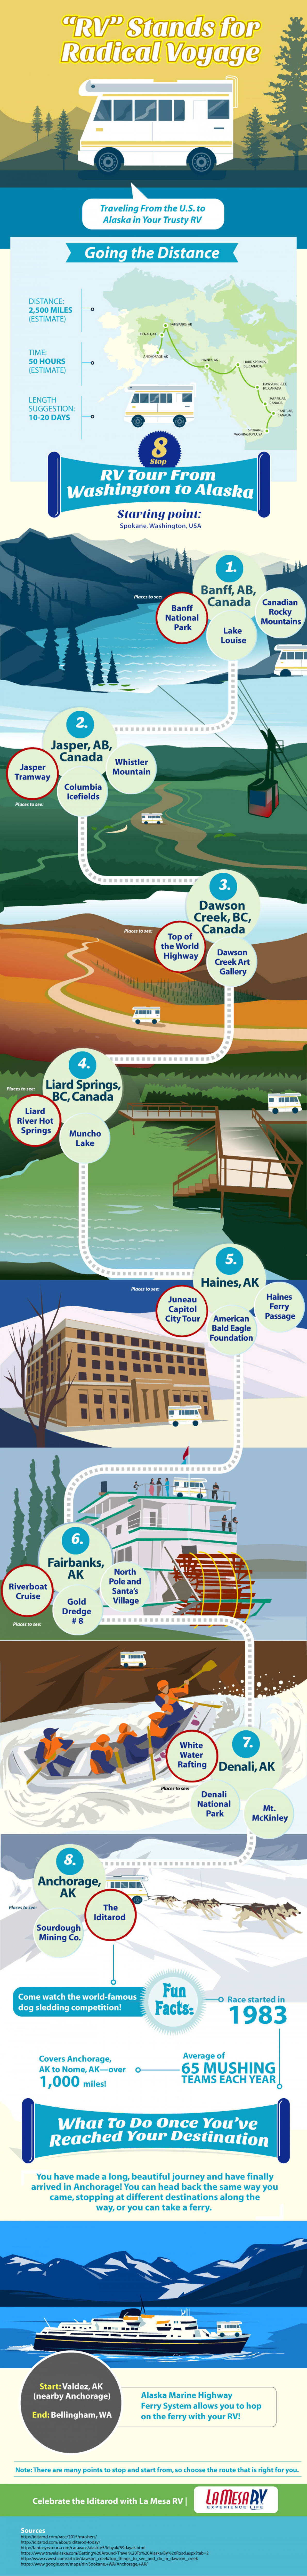 Traveling From the U.S. to Alaska in Your Trusty RV Motorhome  Infographic